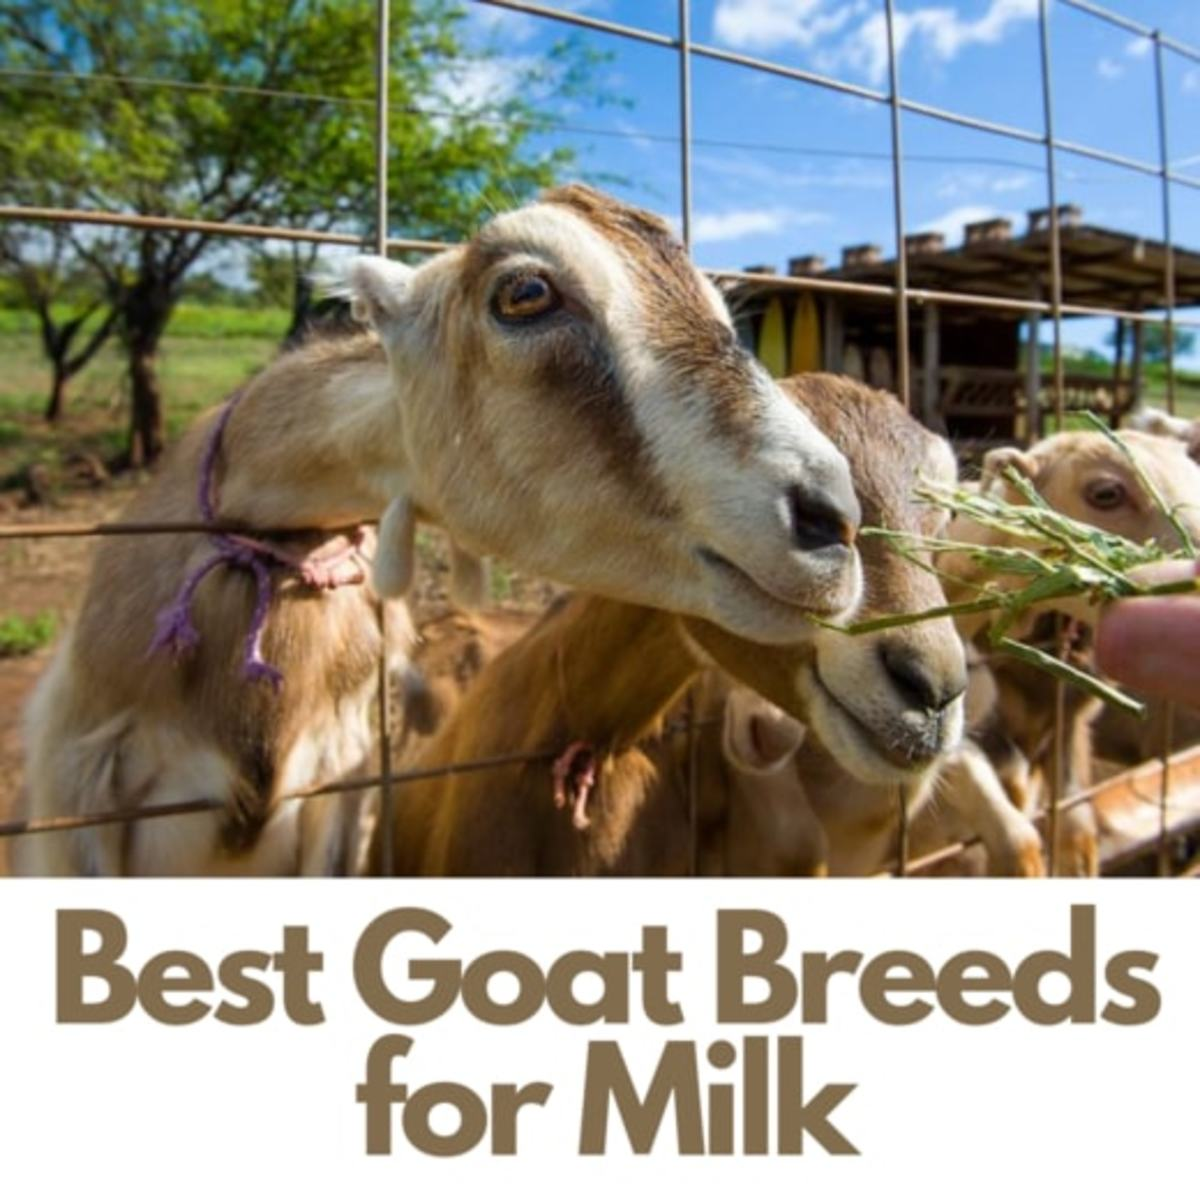 Most Popular Goat Breeds for Milk